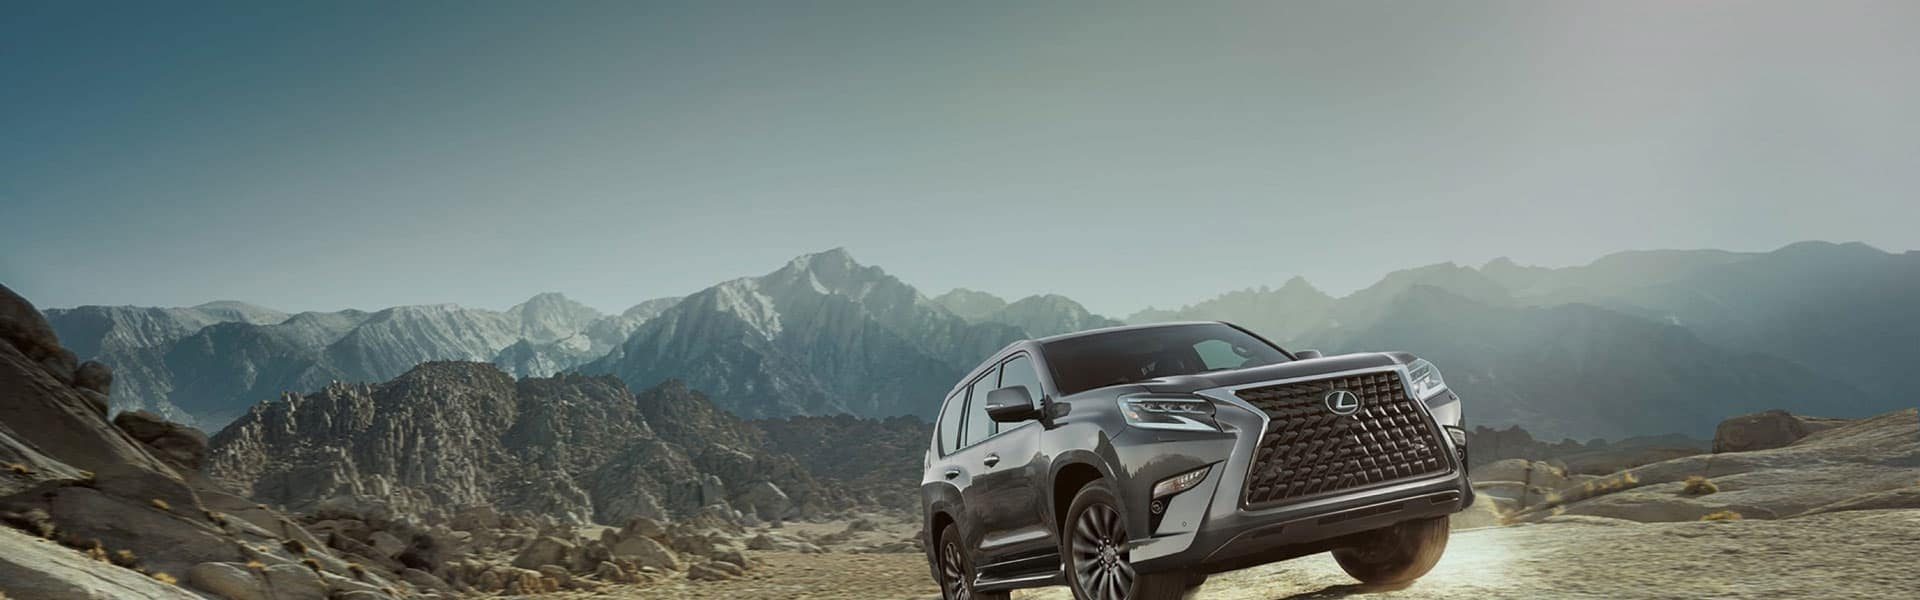 Lexus SUV driving up a rocky mountain side with the mountains in the background